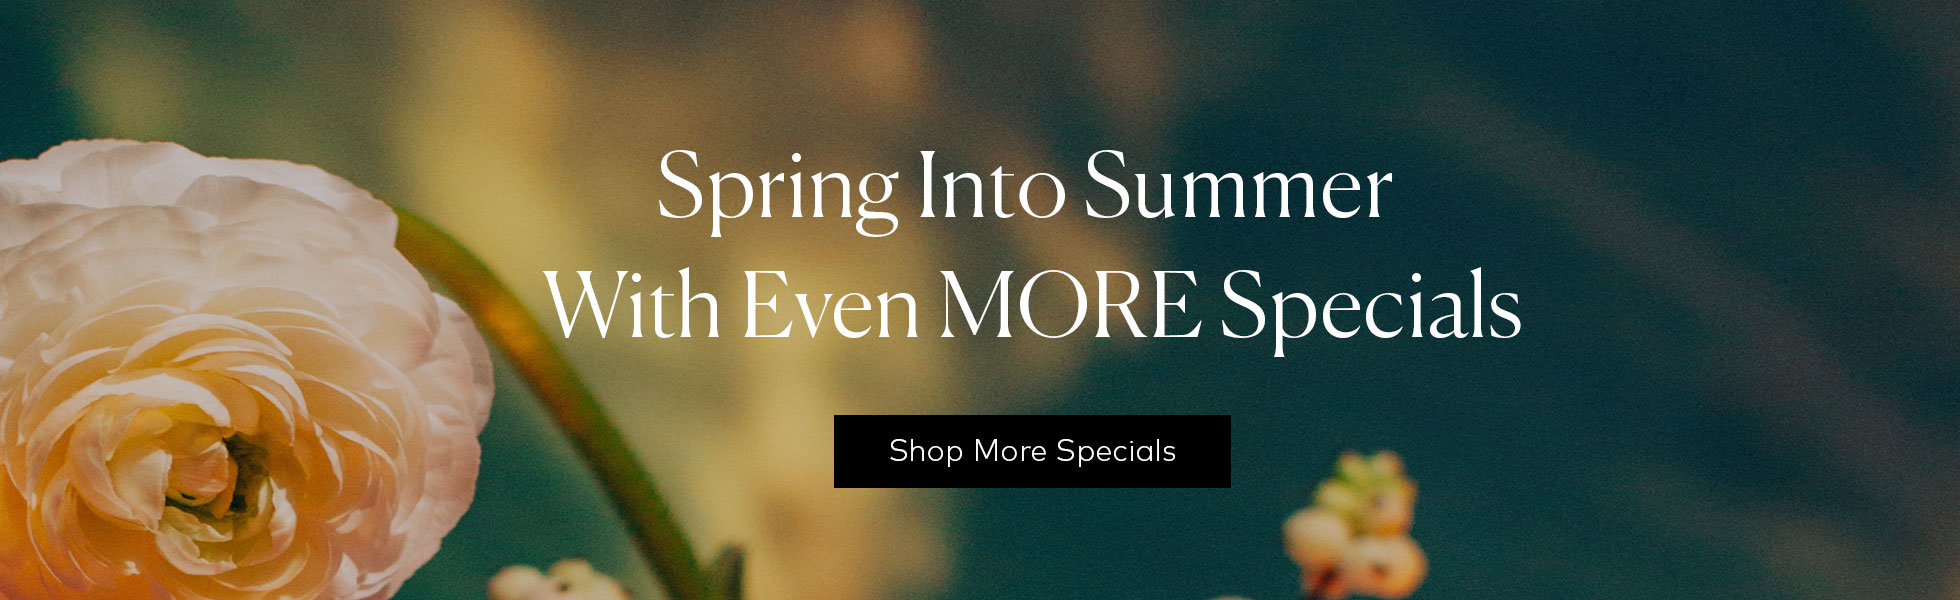 Shop more specials during the Beautylish Spring Into Summer Sale Event